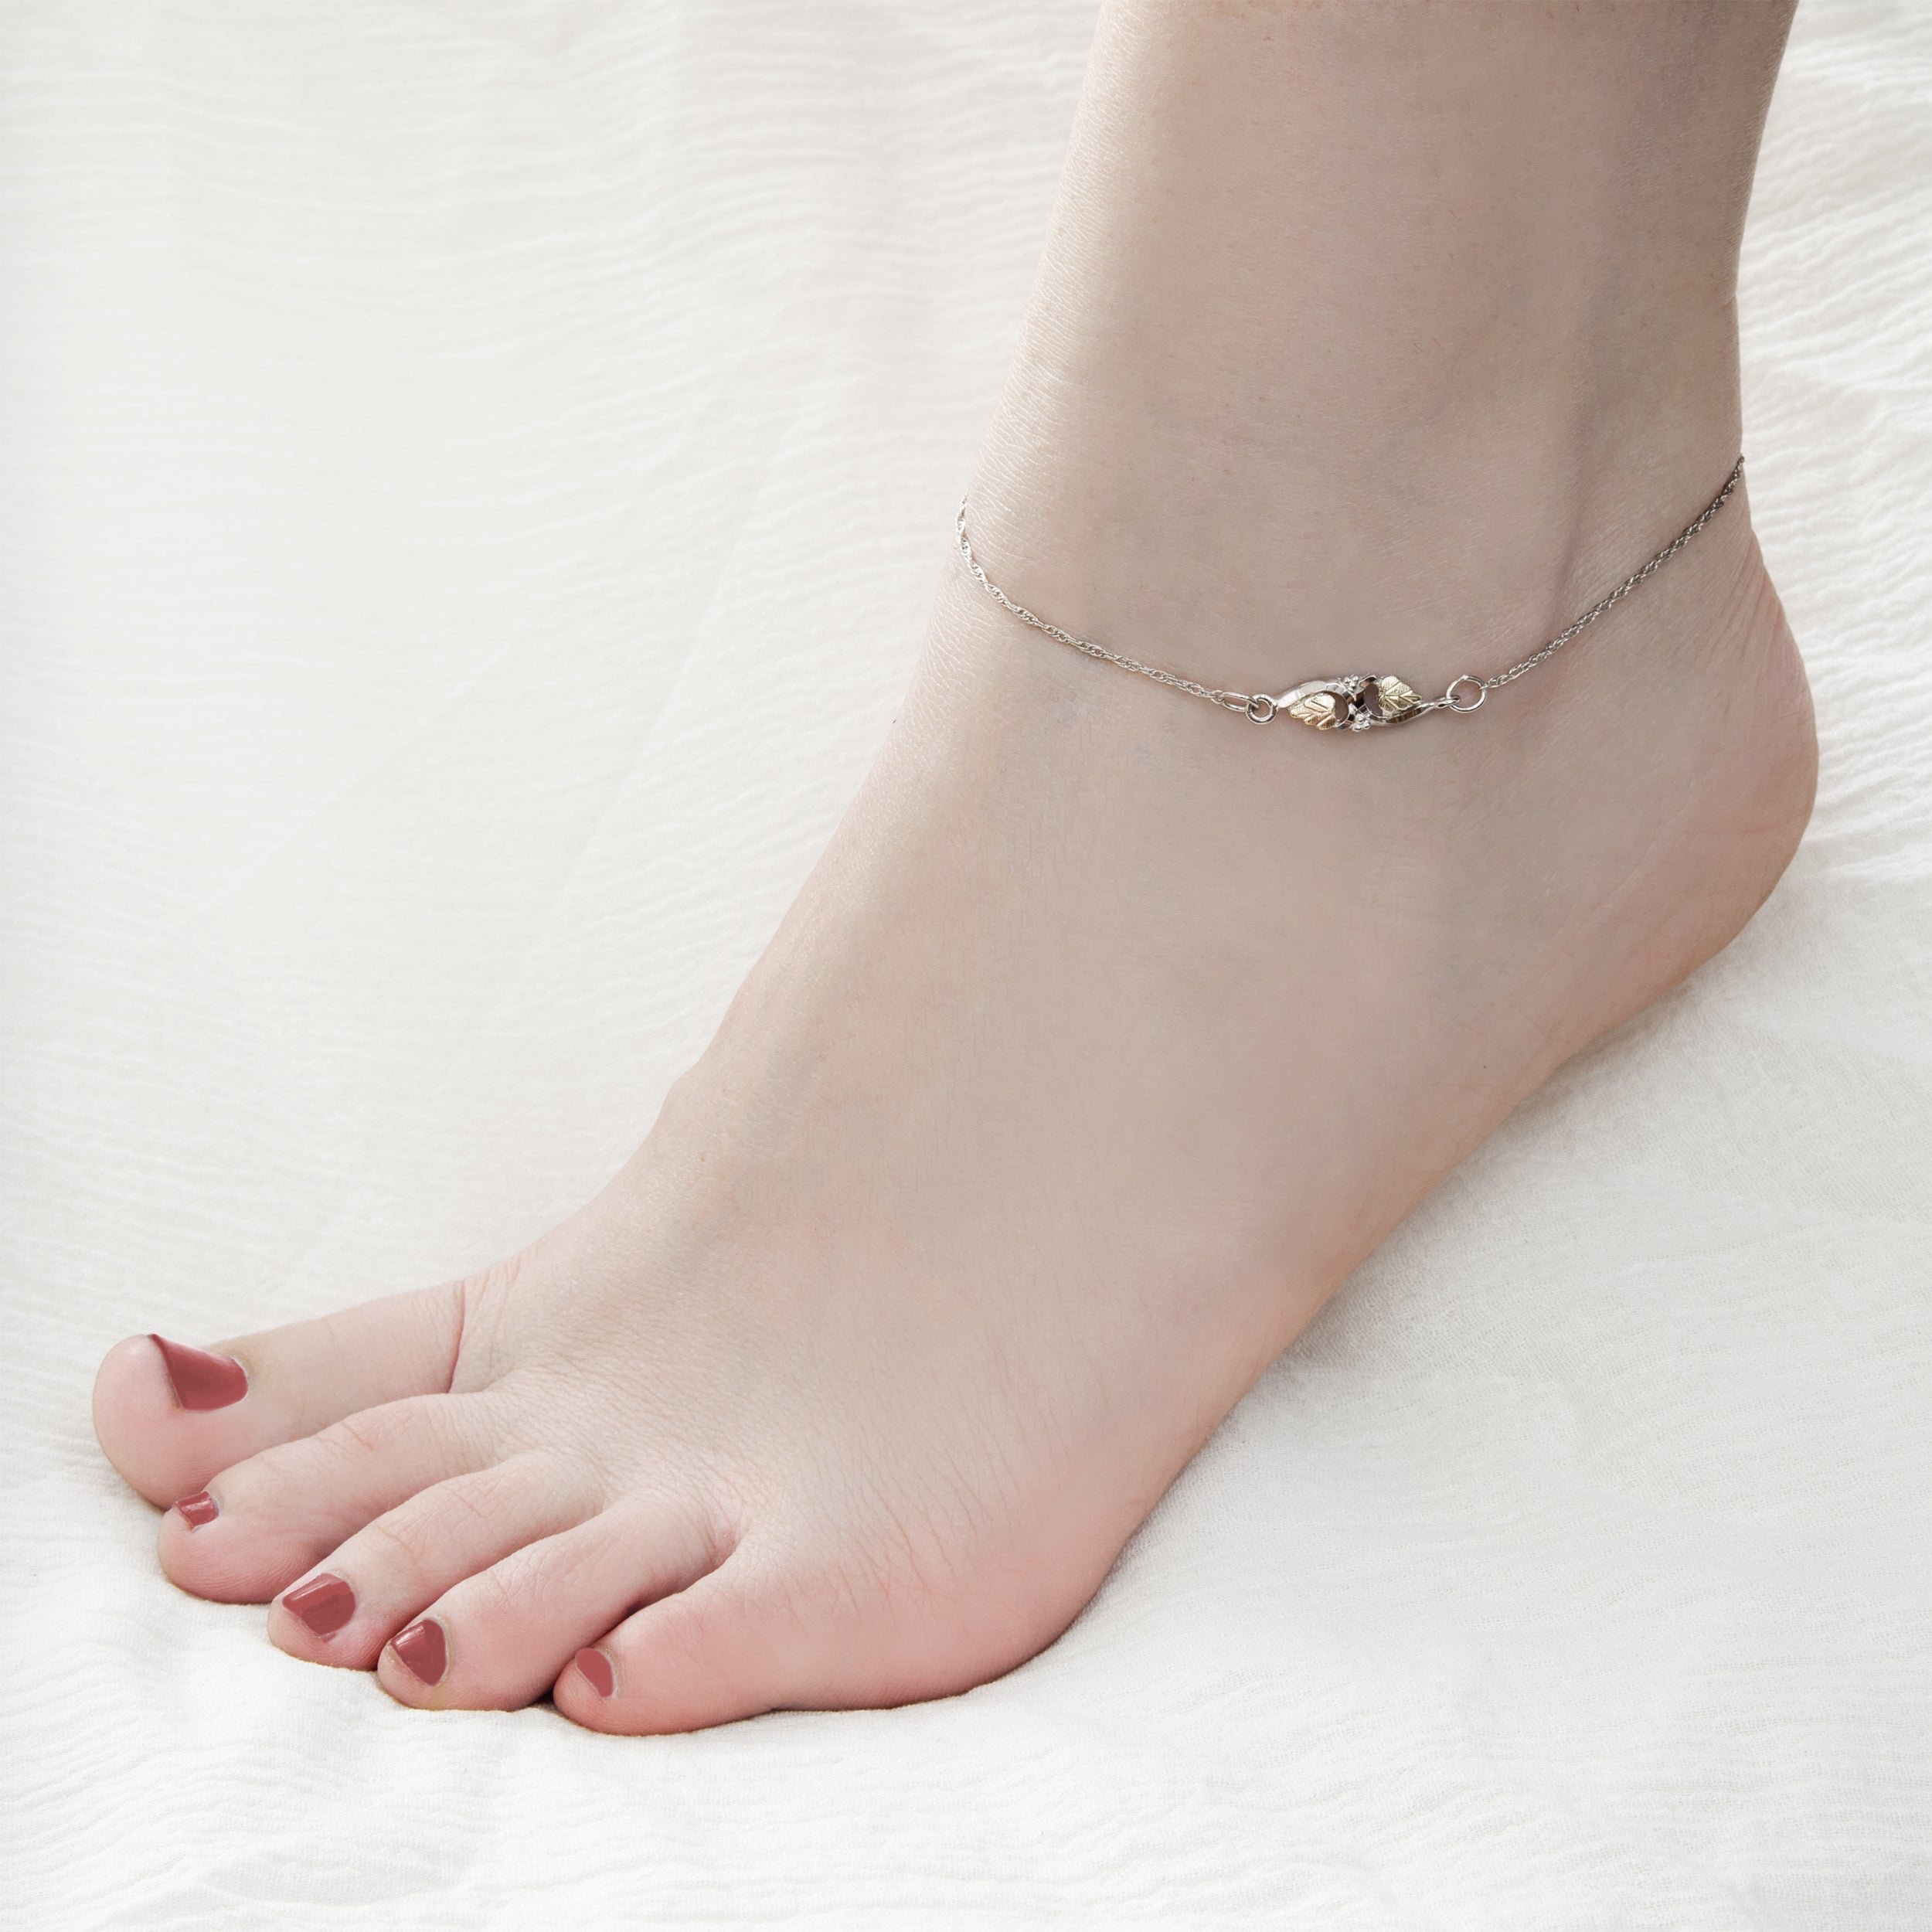 ankle bracelets popular something crystal p jlji bracelet blue gold anklet fullxfull cystal il bridal swarovski bermuda filled